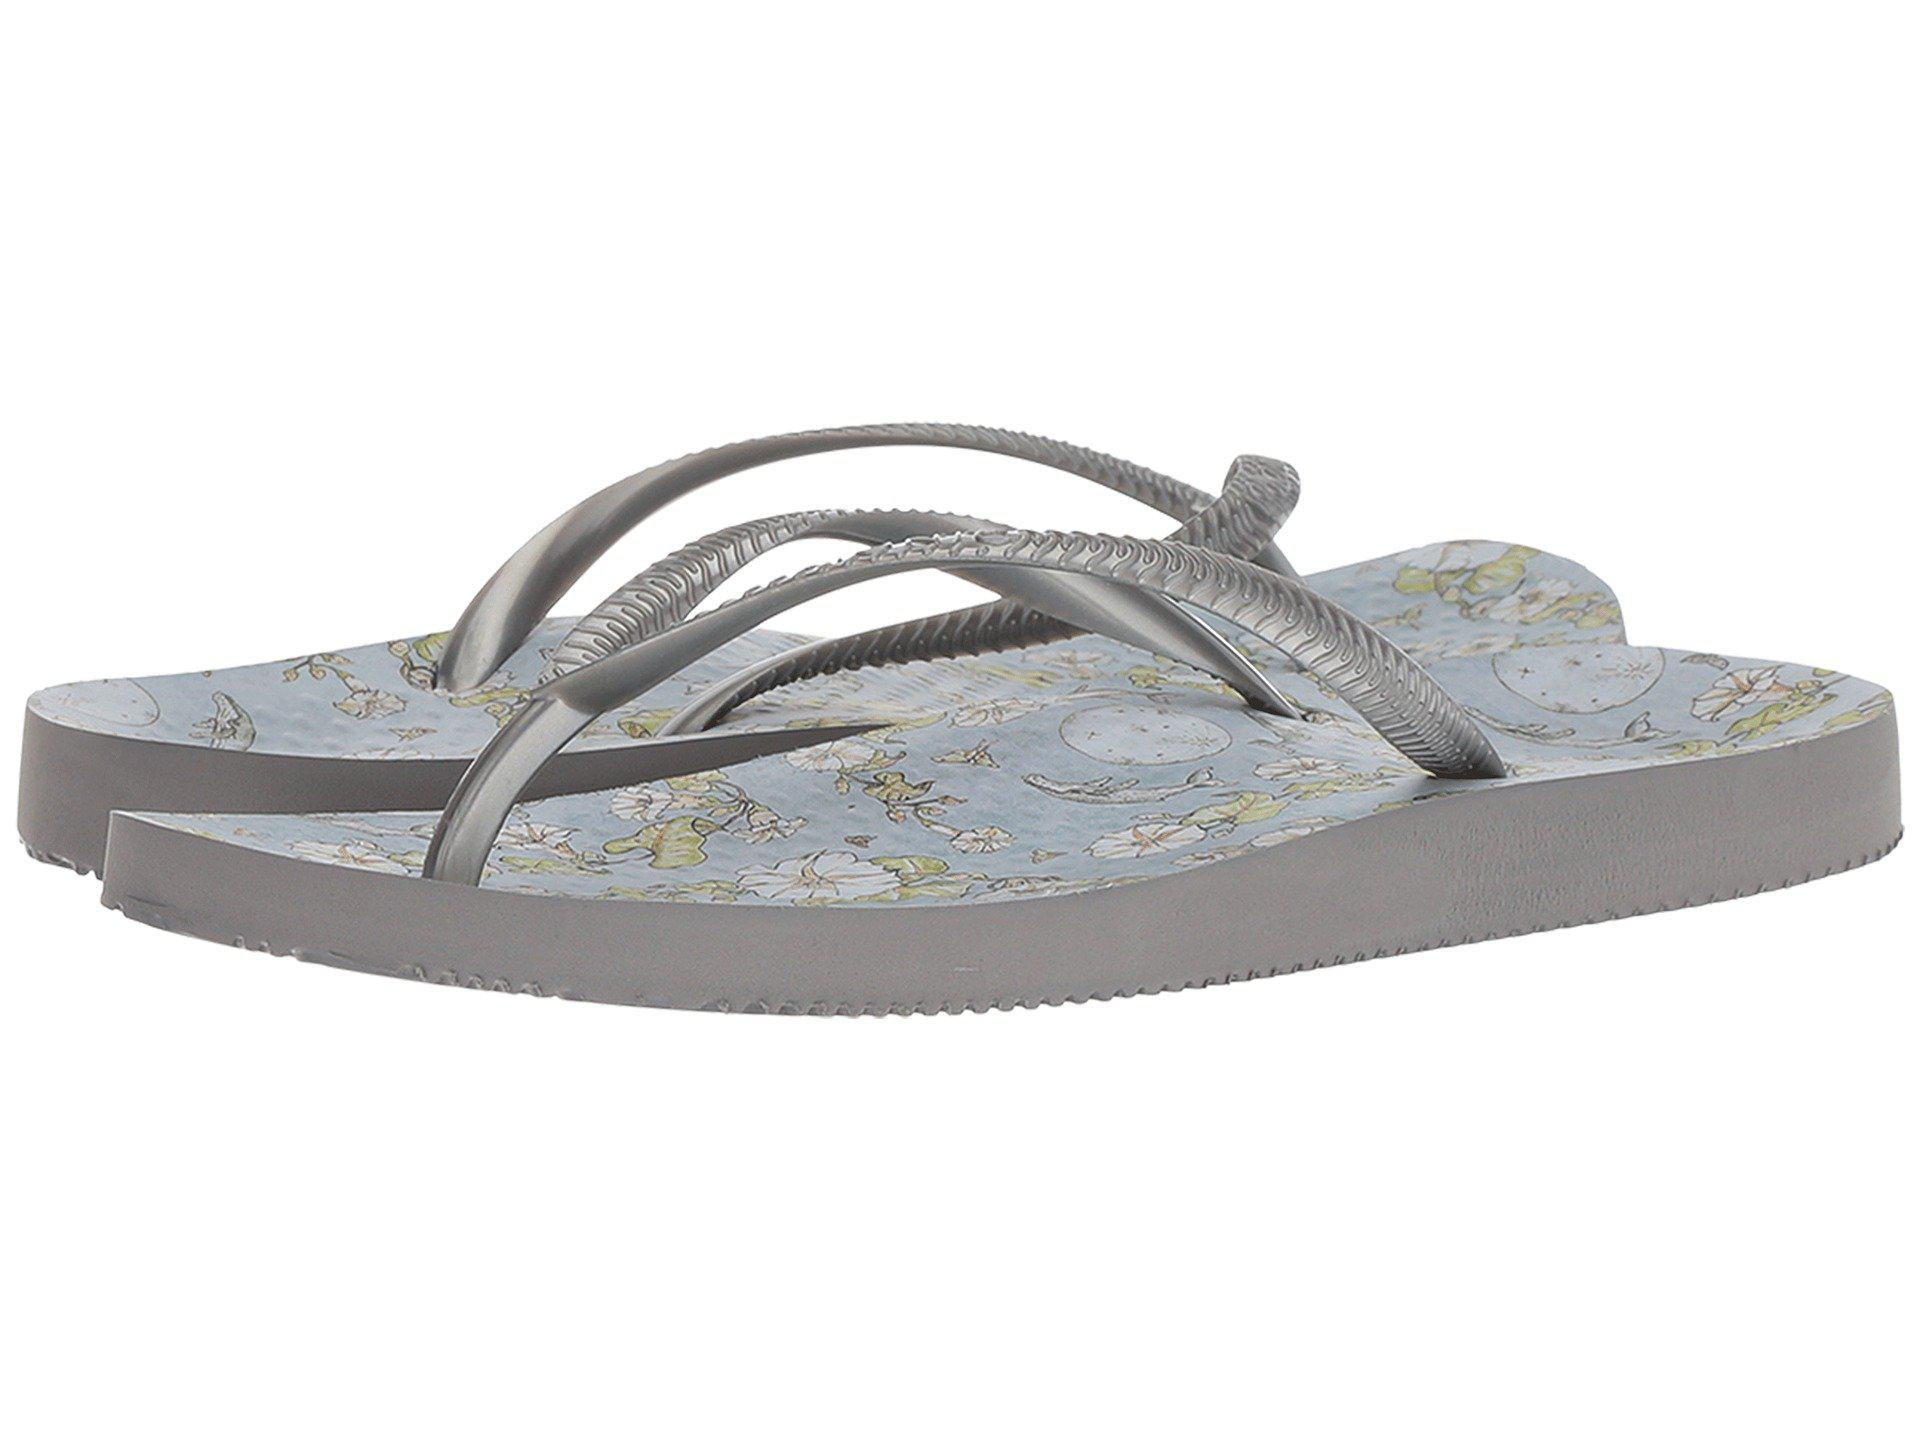 f8c9285fe19 Lyst - Vionic Beach Noosa (red Tropical bronze) Women s Sandals in Gray